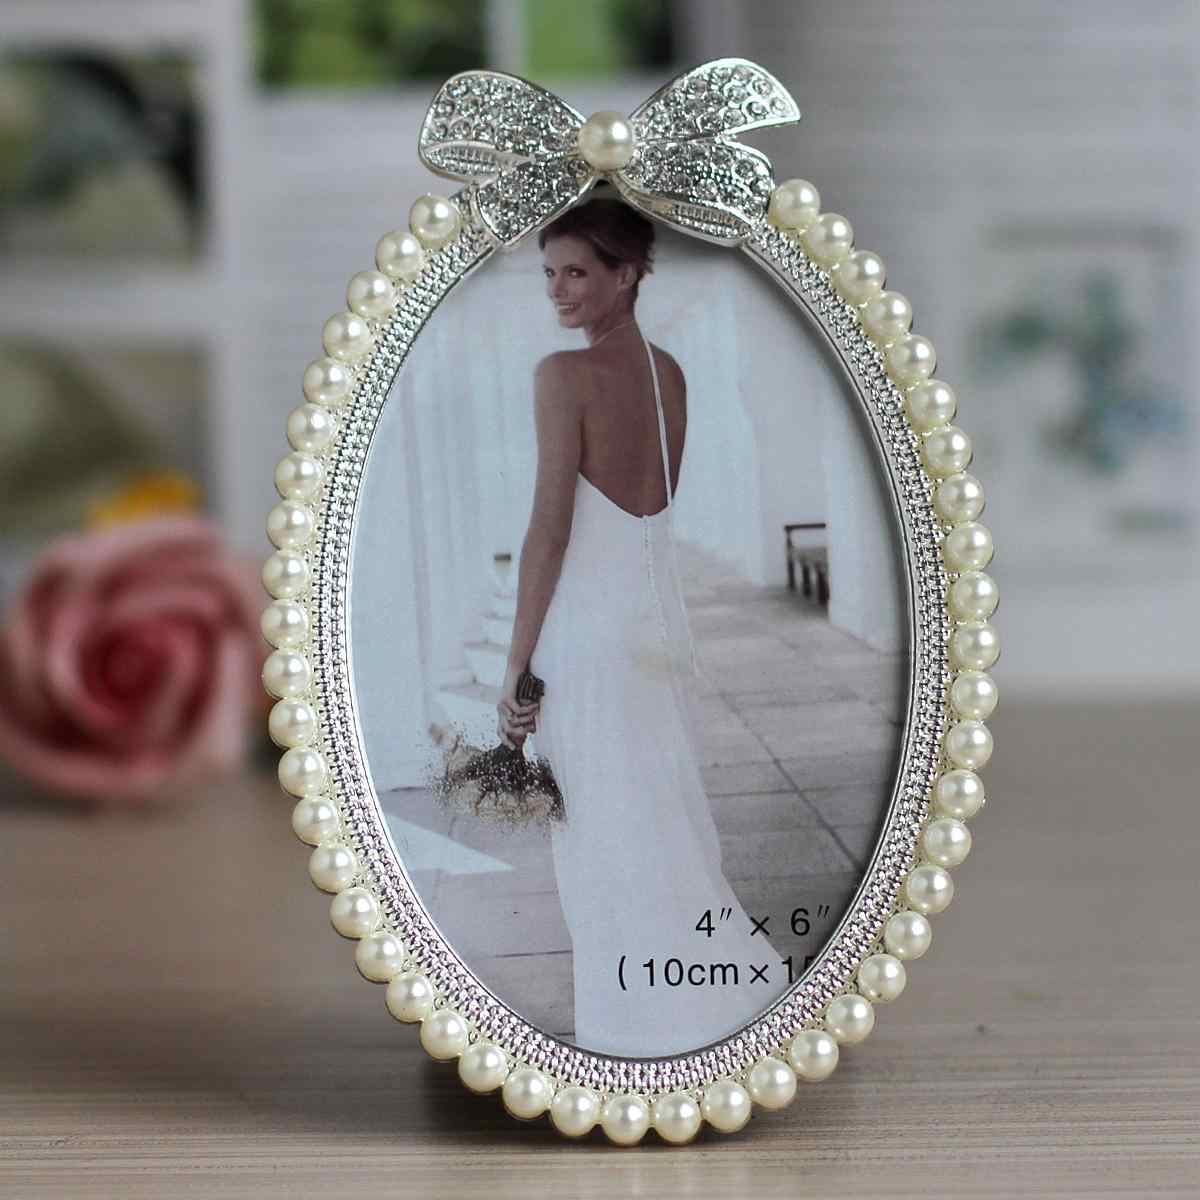 Hot Selling Newest 3 Inch 6 Inch 7 Inch Pearl Picture Frame with Diamond Pearl Pendulum Wedding Photo Frame Birthday Gift Item